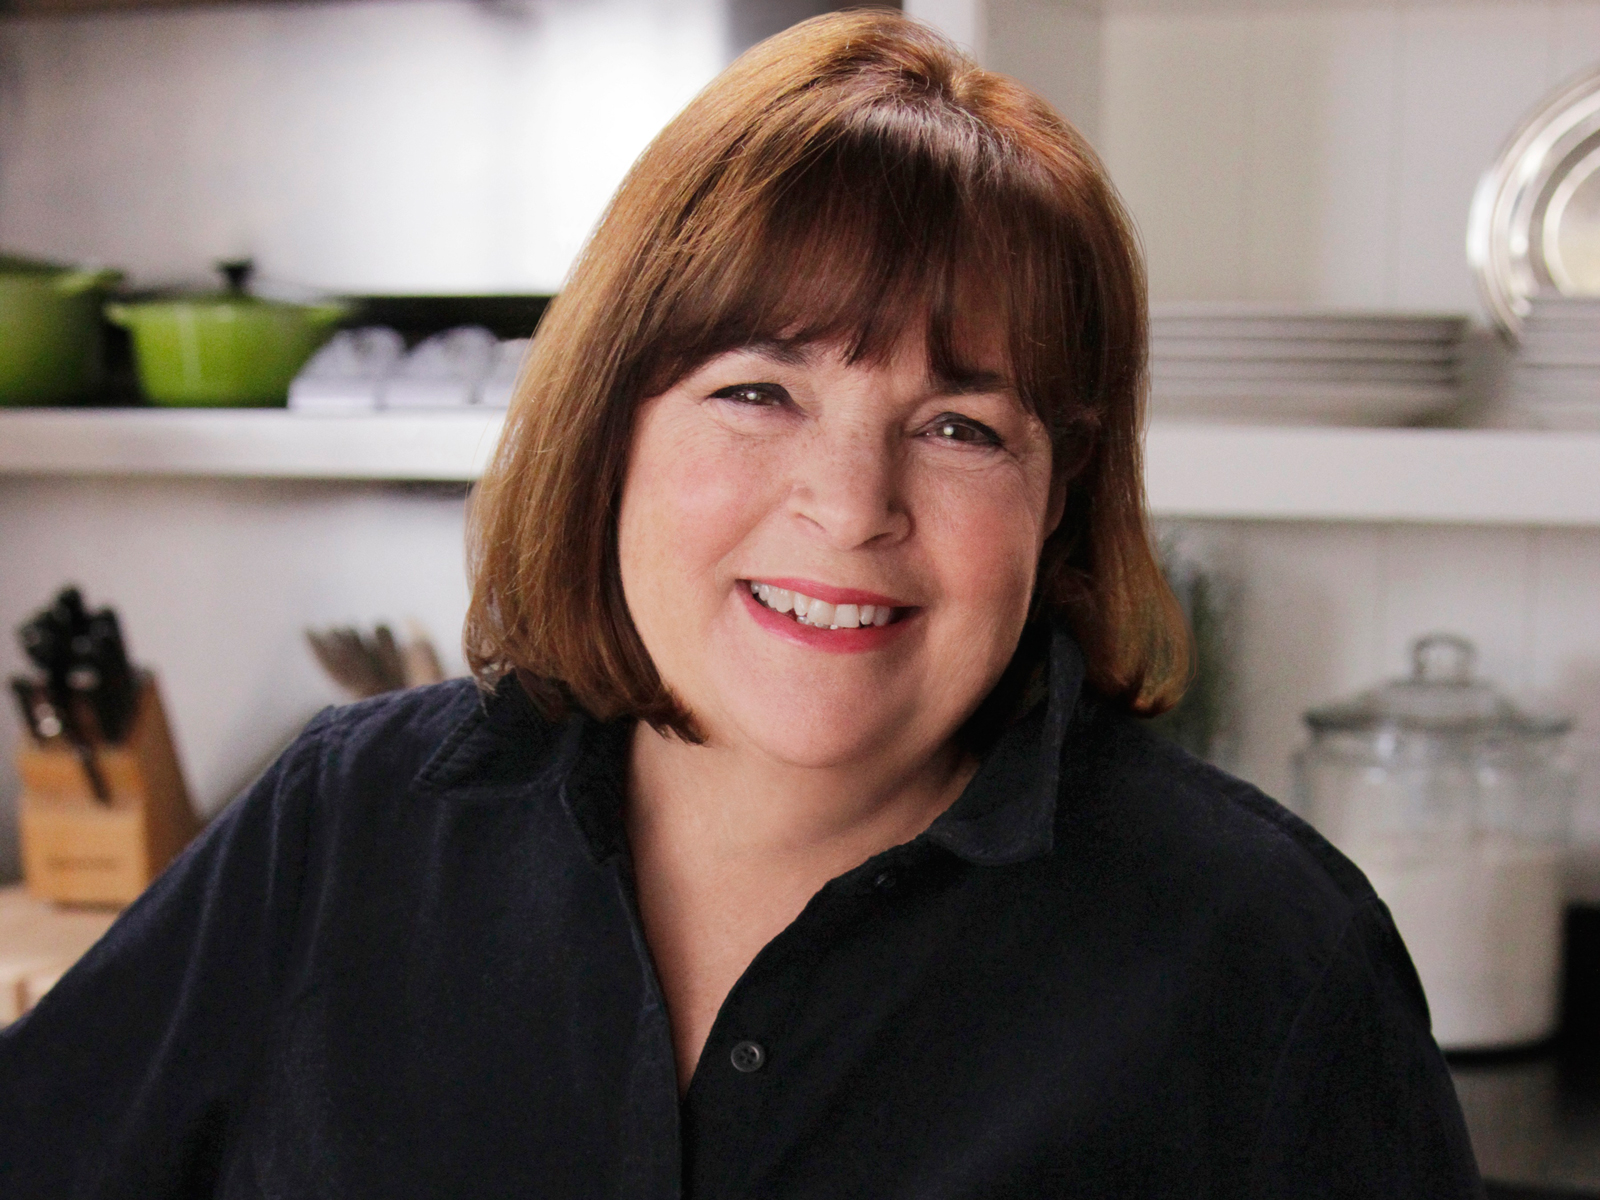 Ina Garten's 'Barefoot Contessa: Cook Like a Pro' Returns in October